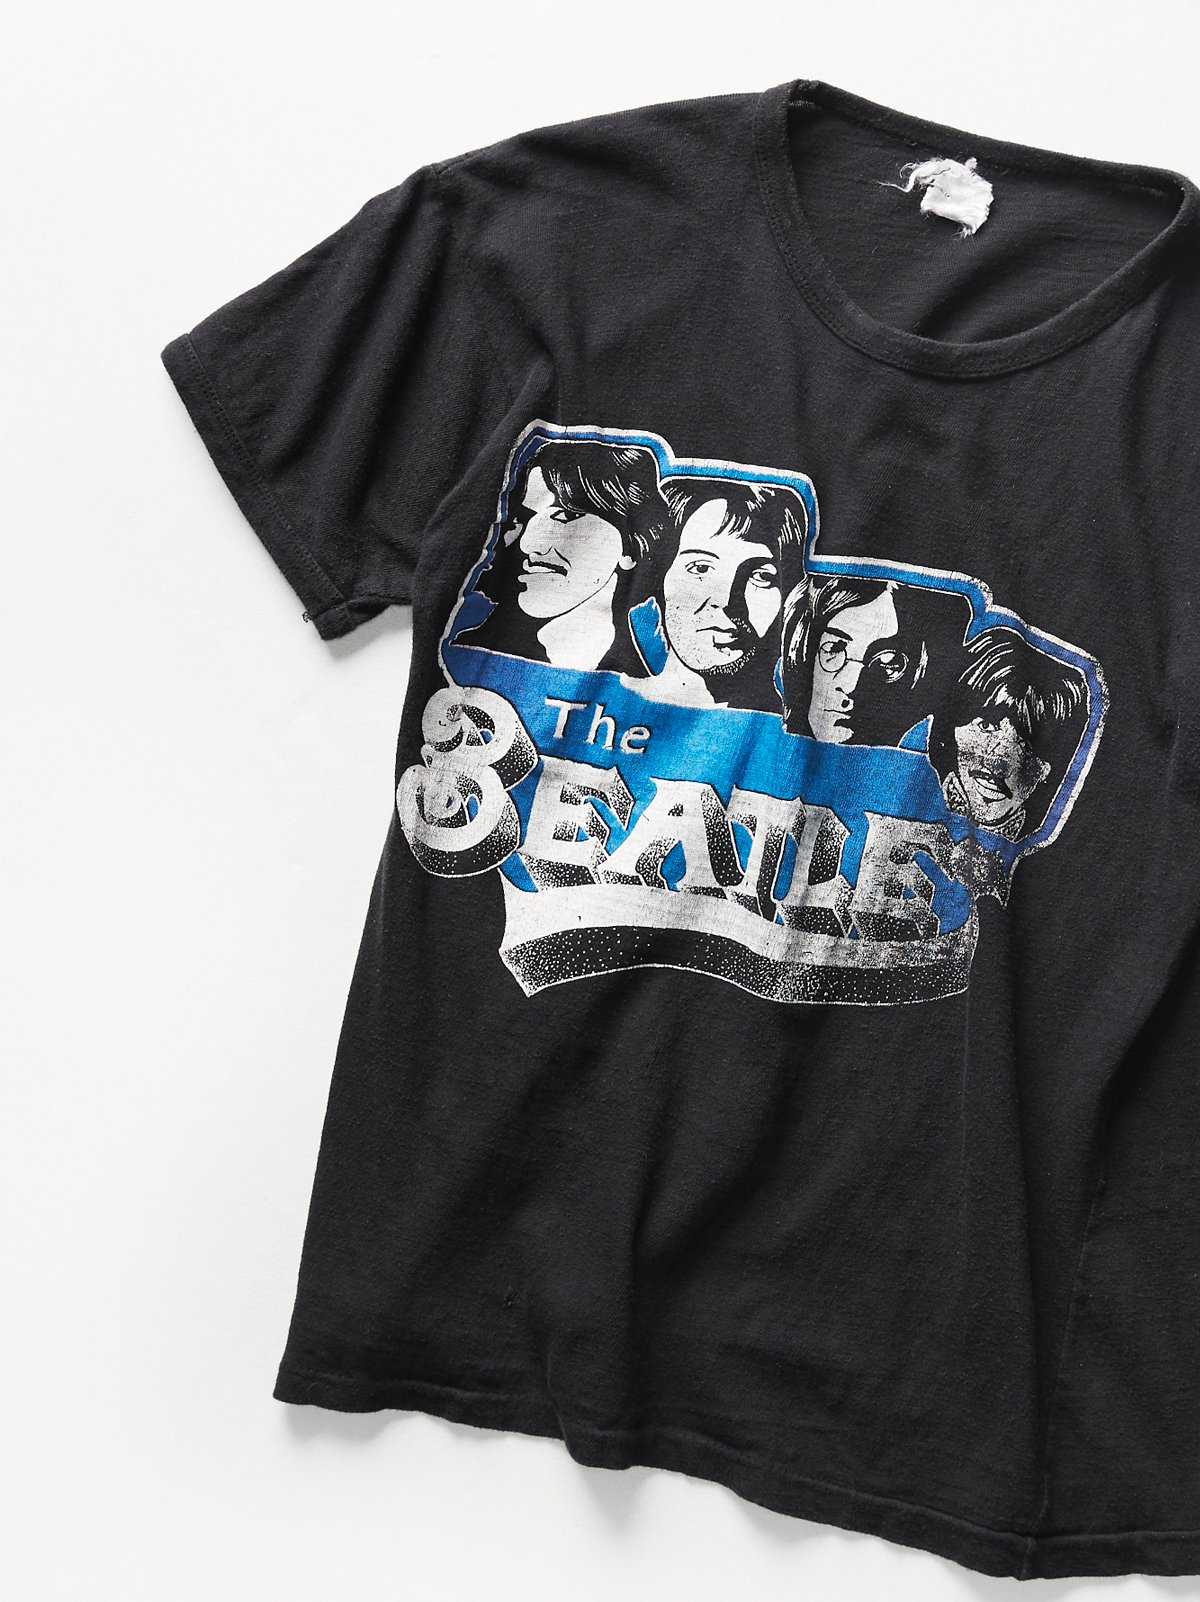 Vintage1980s Band Tee